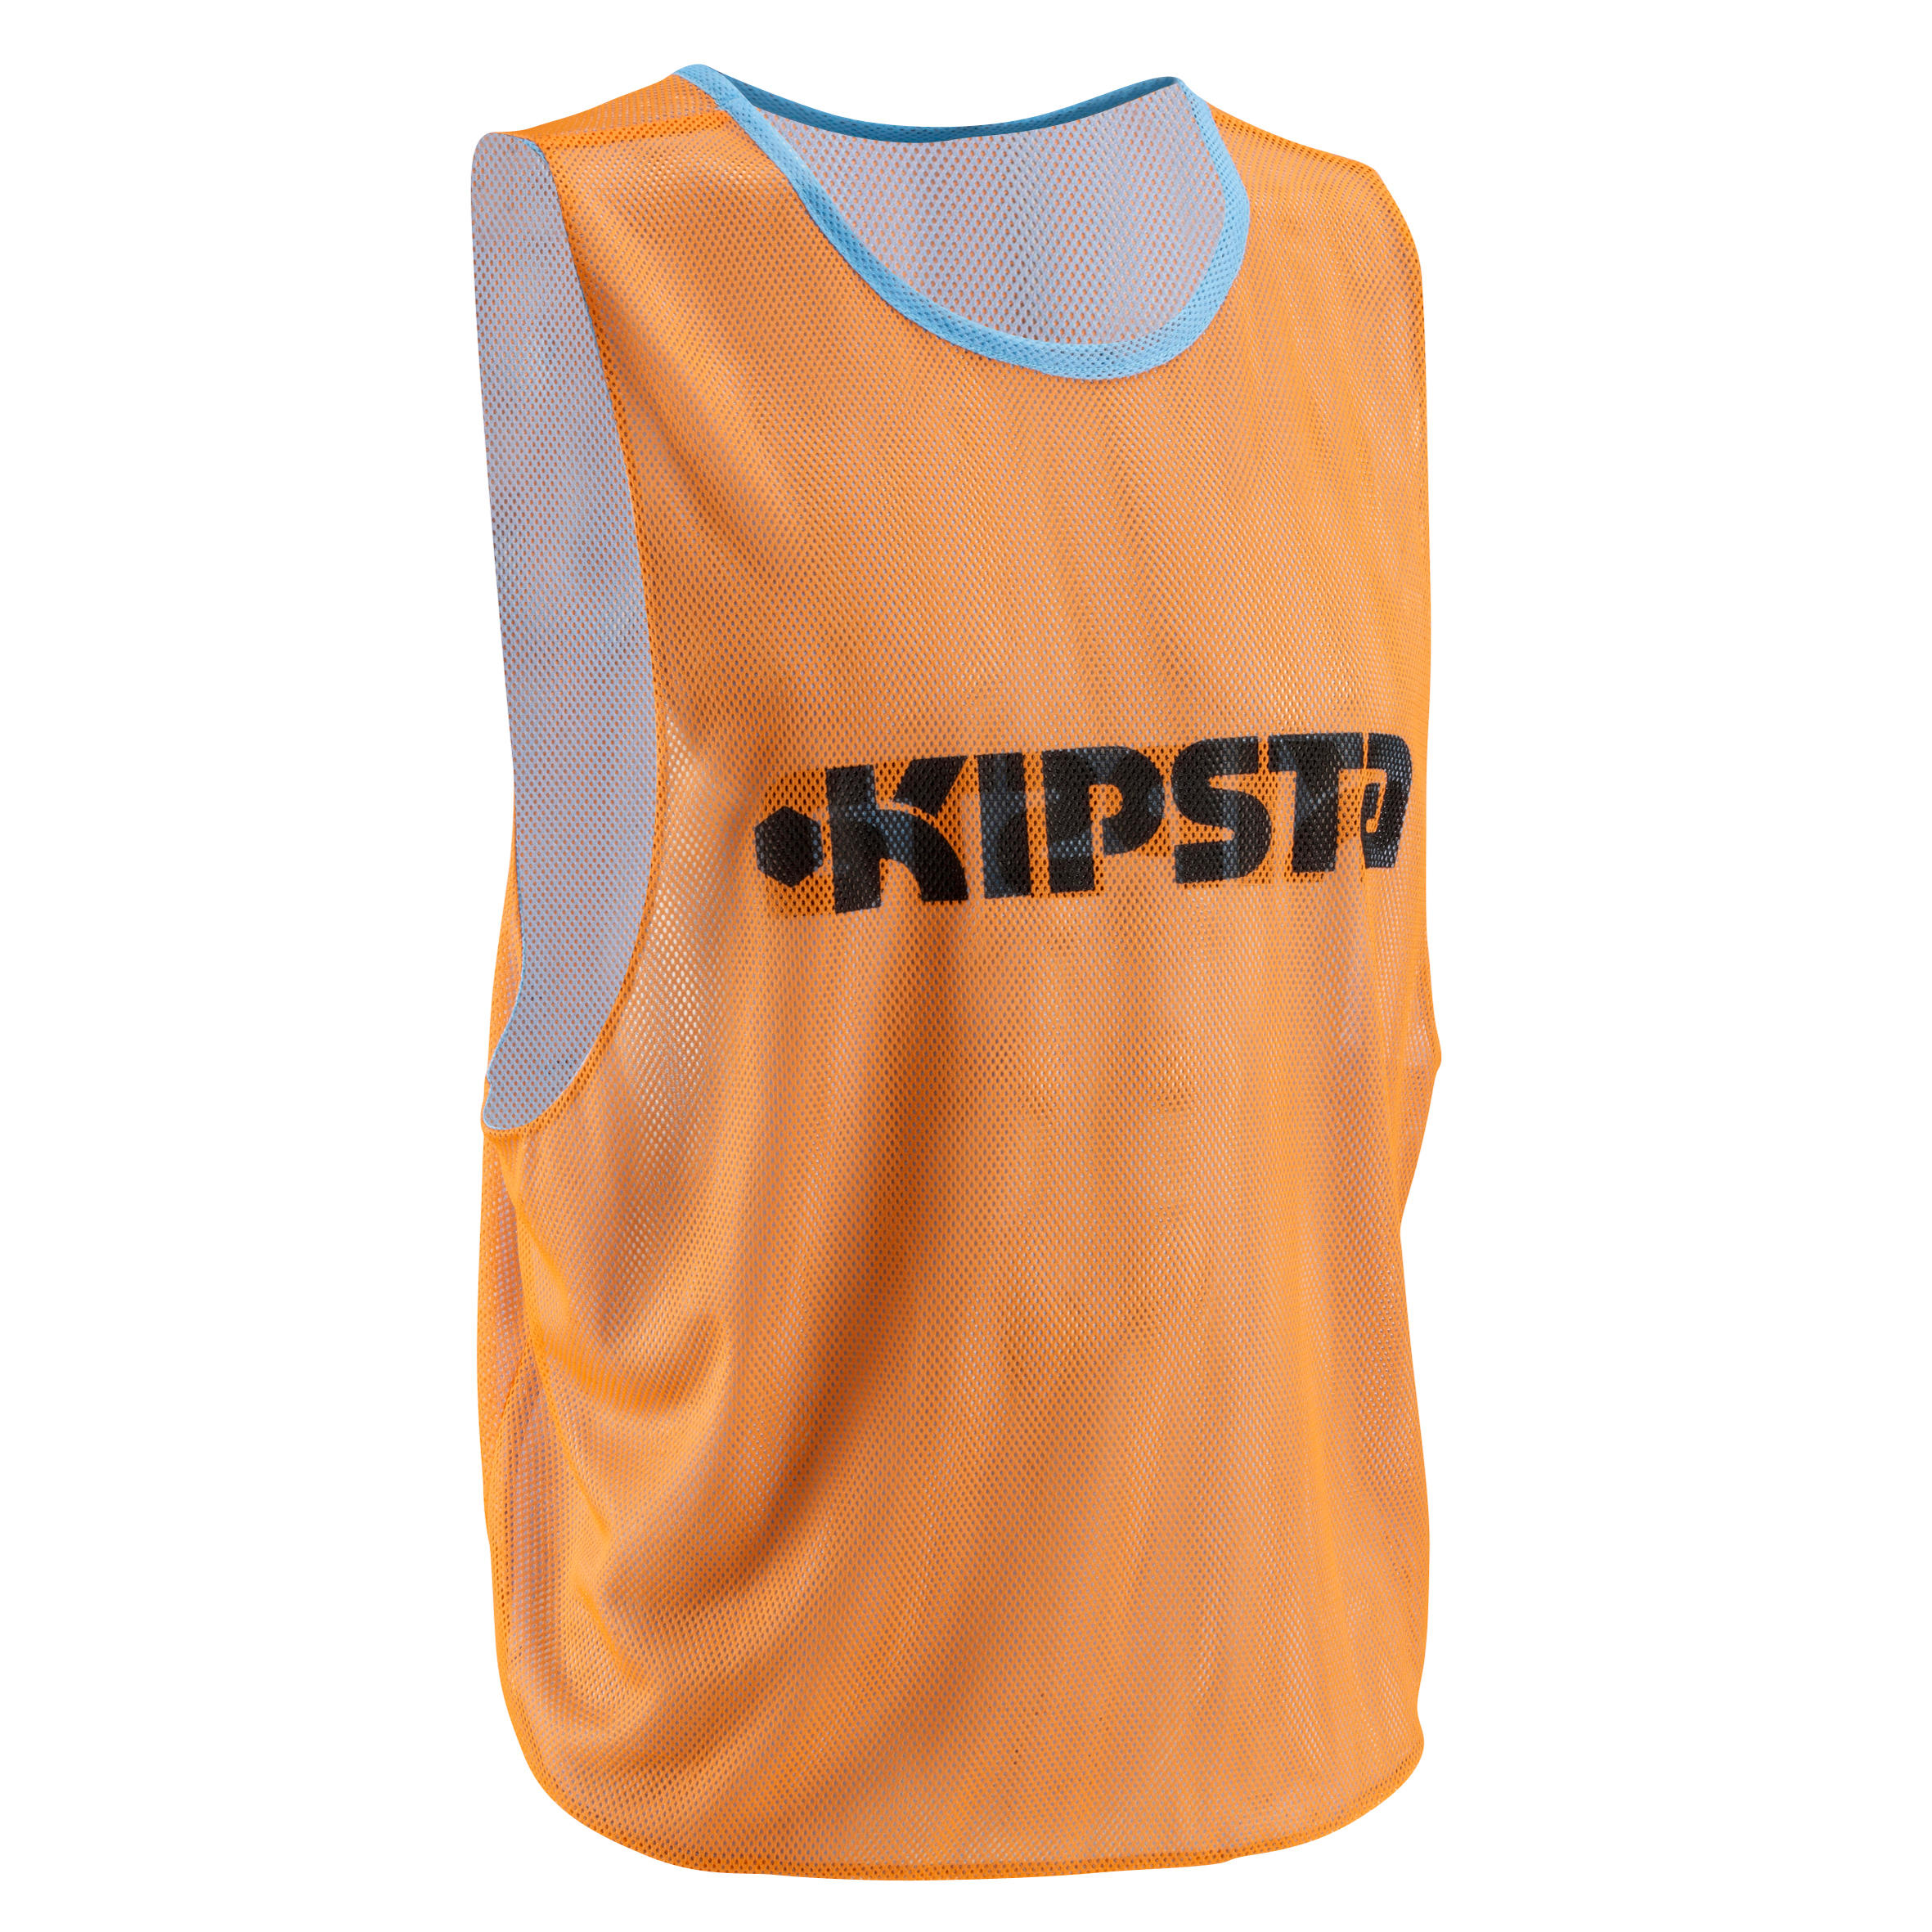 Adult Reversible Sports Bib - Blue/Orange